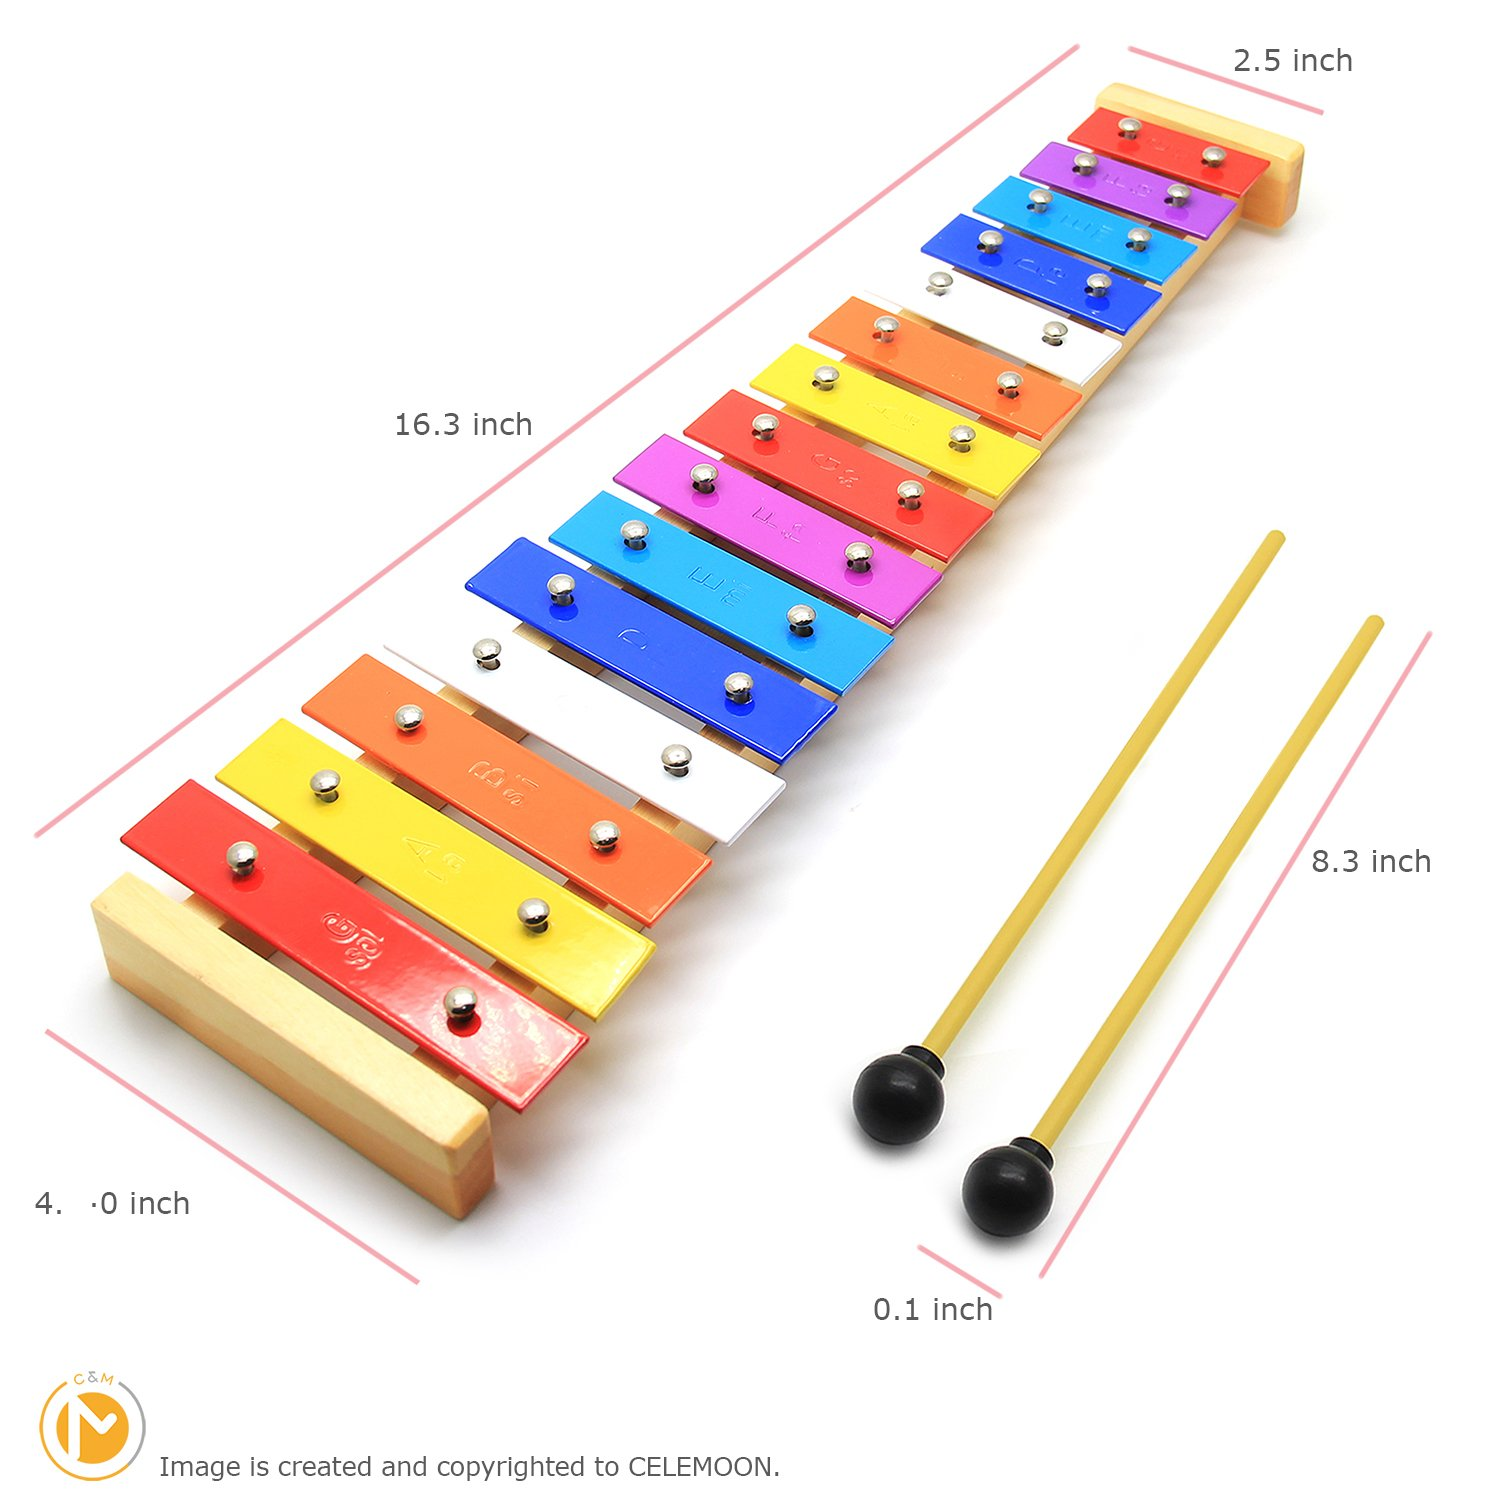 CELEMOON Natural Wooden Toddler Xylophone Glockenspiel For Kids with Multi-Colored Metal Bars Included Two Sets of Child-Safe Wooden Mallets (15-tone) by CELEMOON (Image #5)